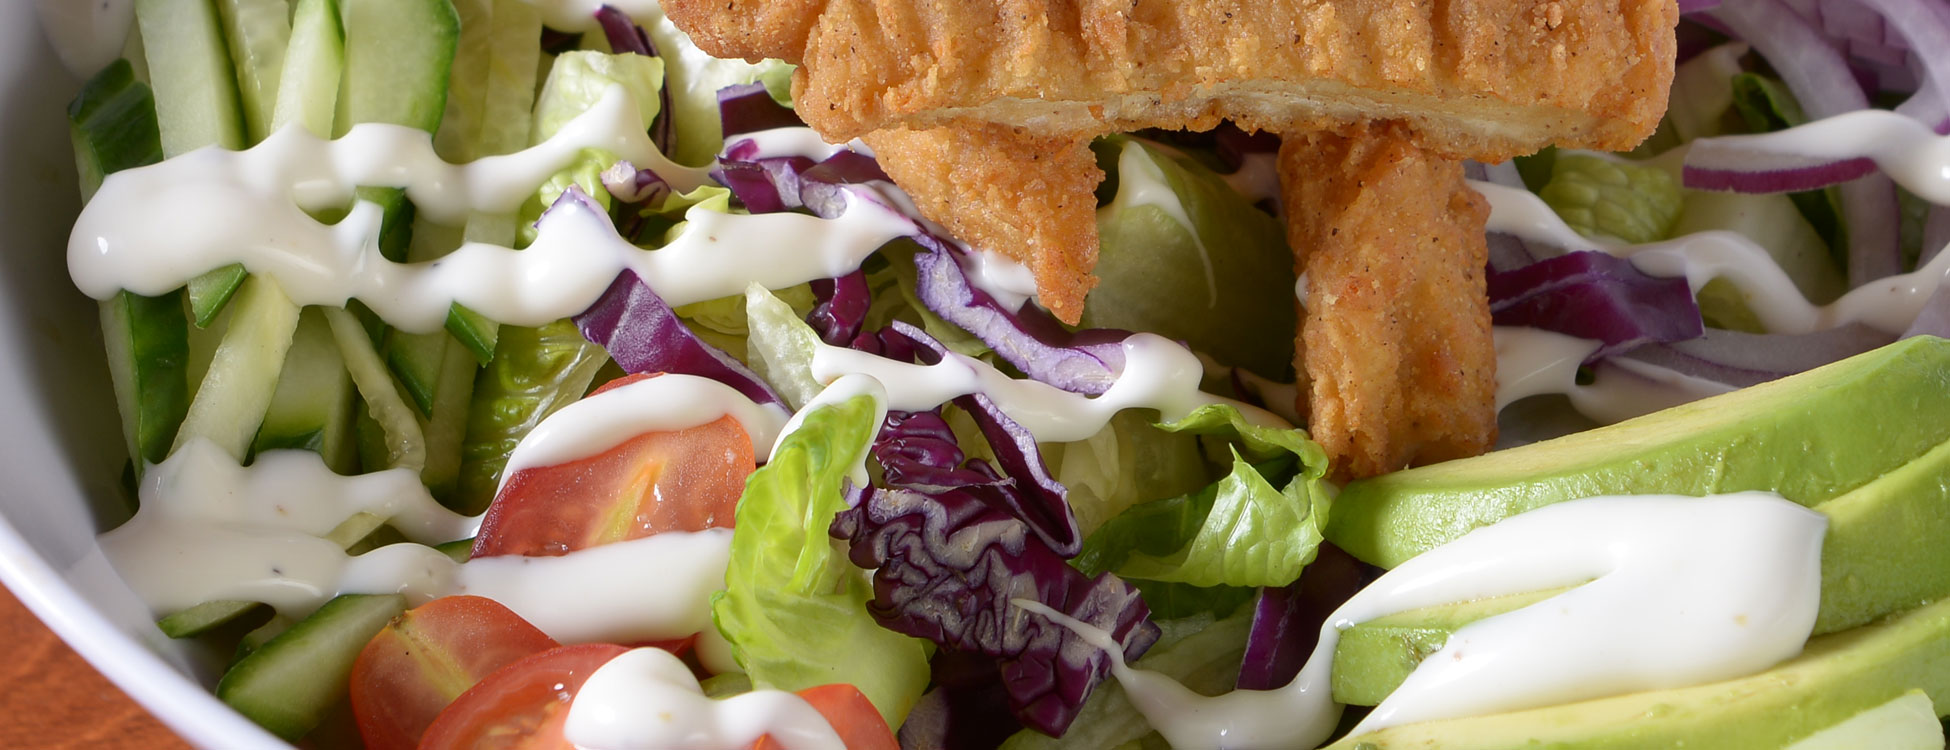 Battered Chicken in Salad